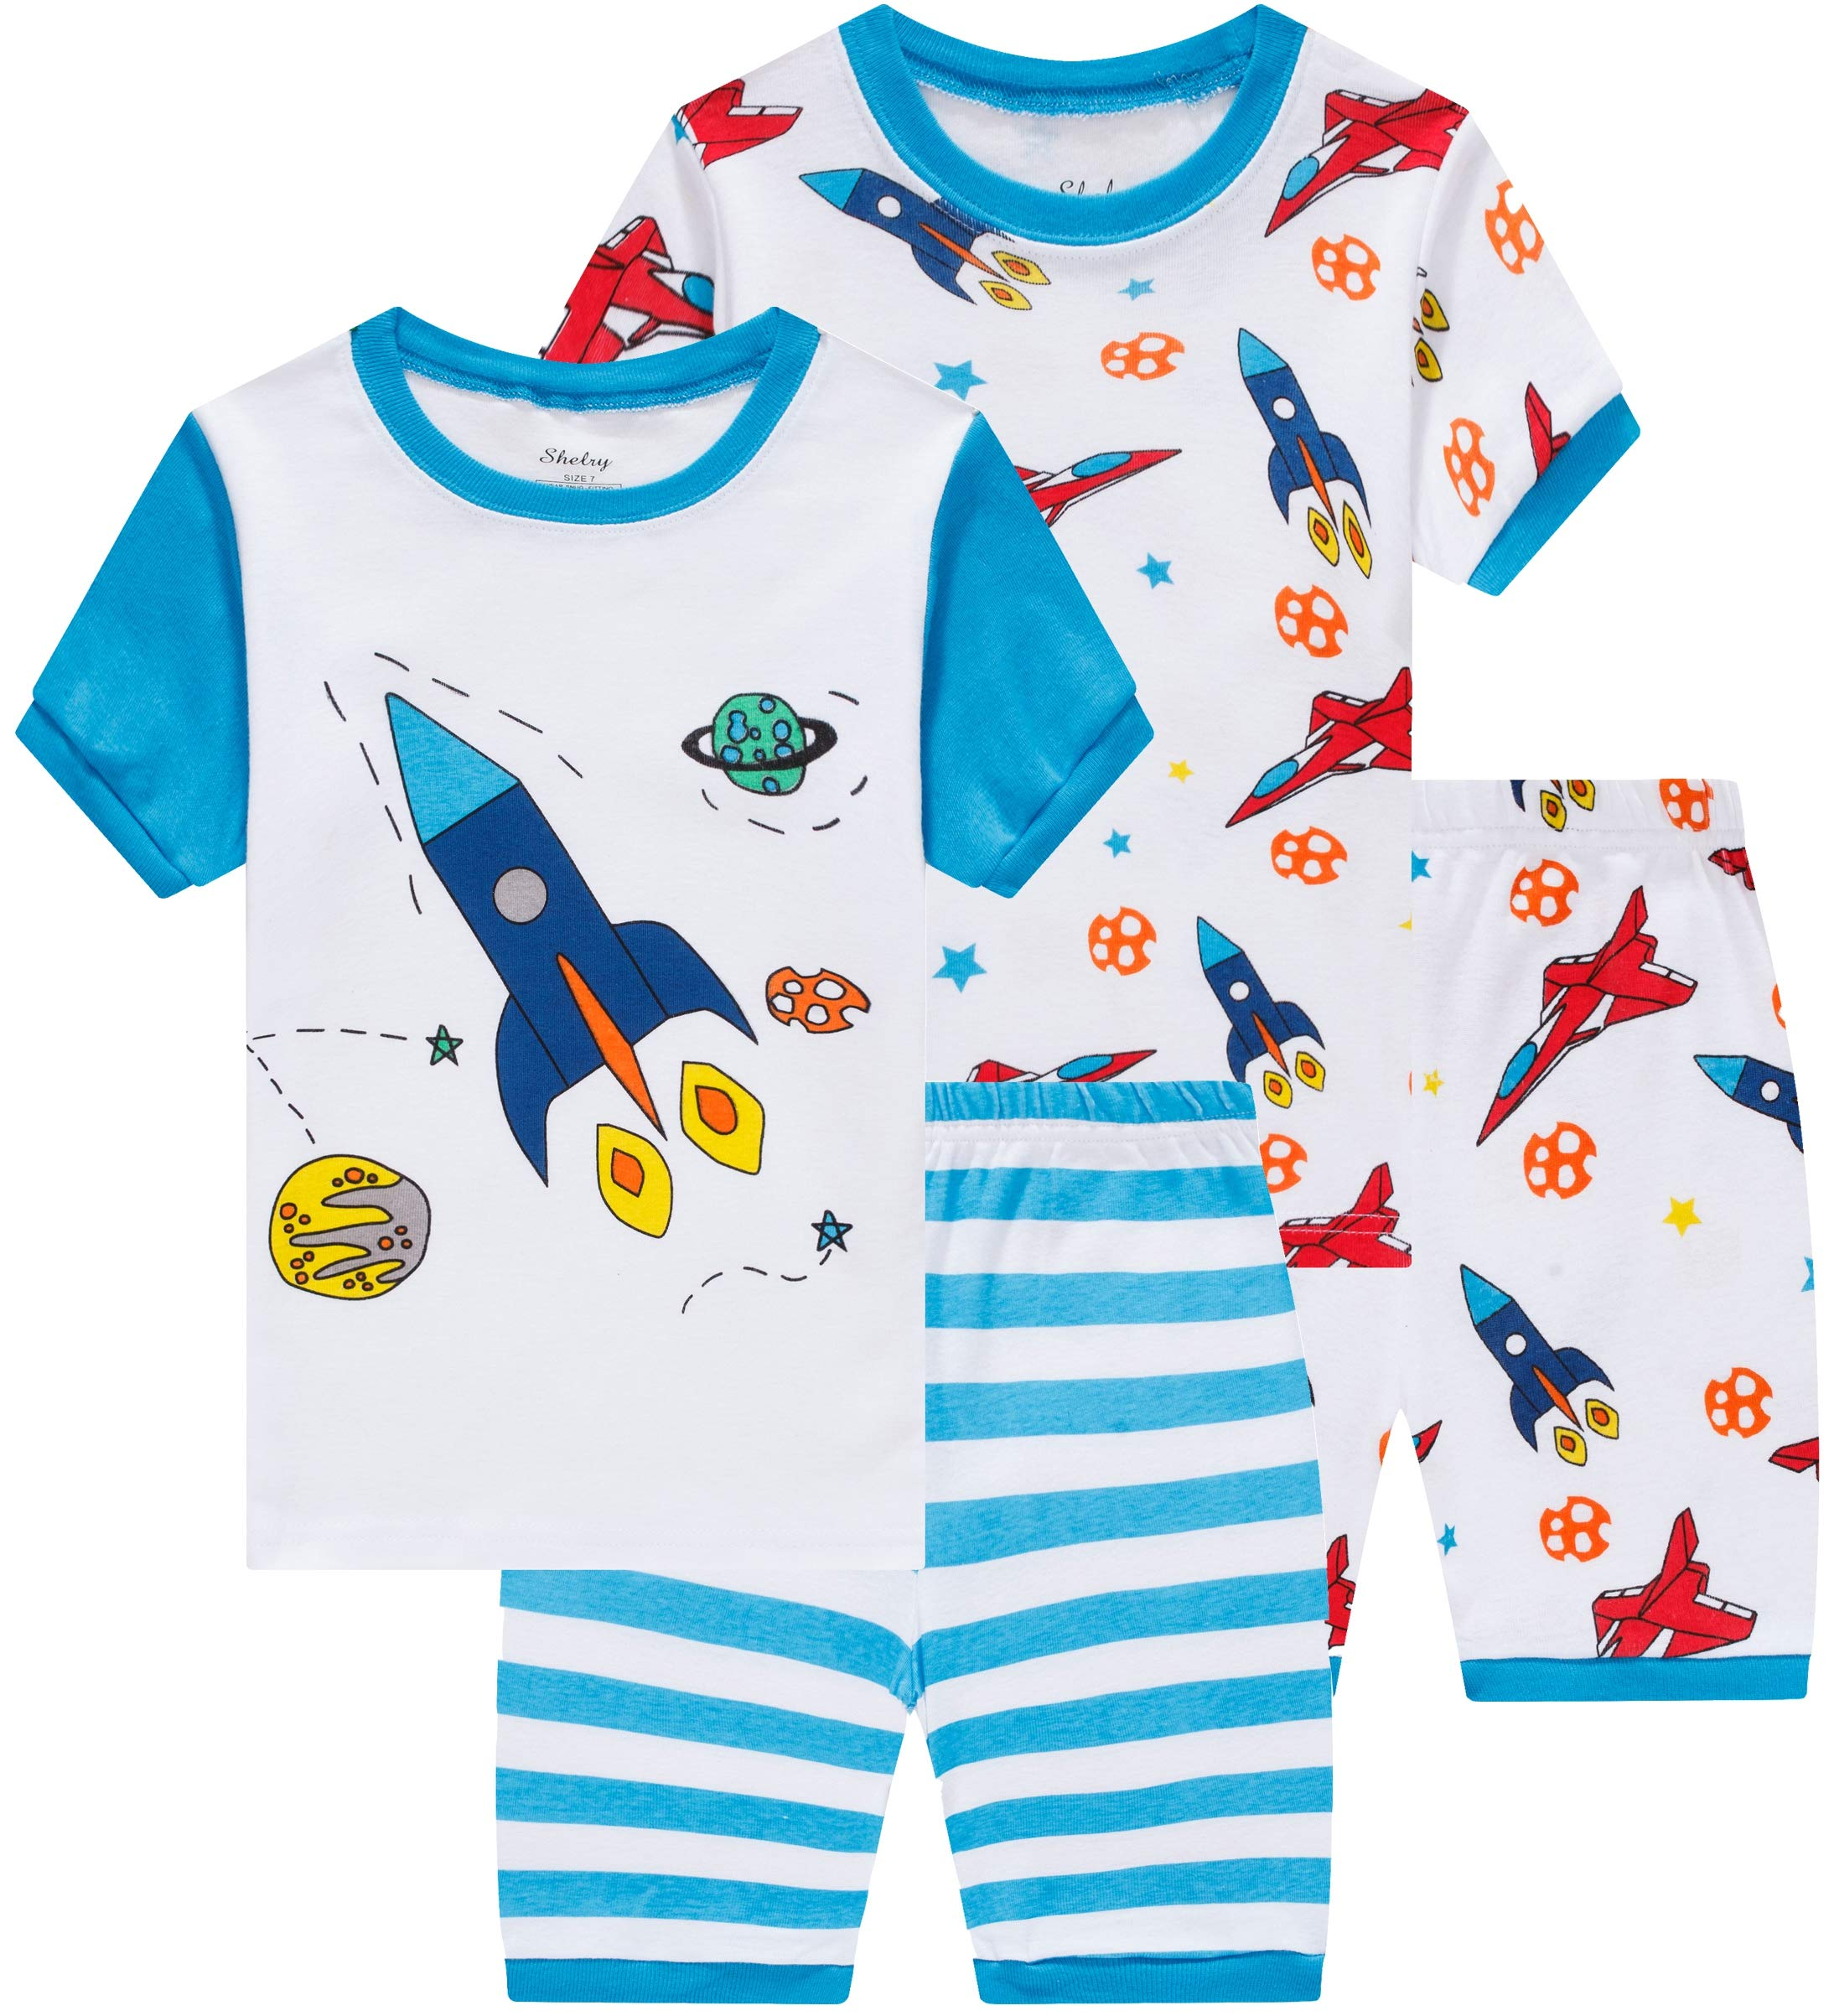 shelry Summer Boys Rocket Pajamasb 4 Pieces Baby Airplane Clothes Toddler Kids Short Pj Set 5t